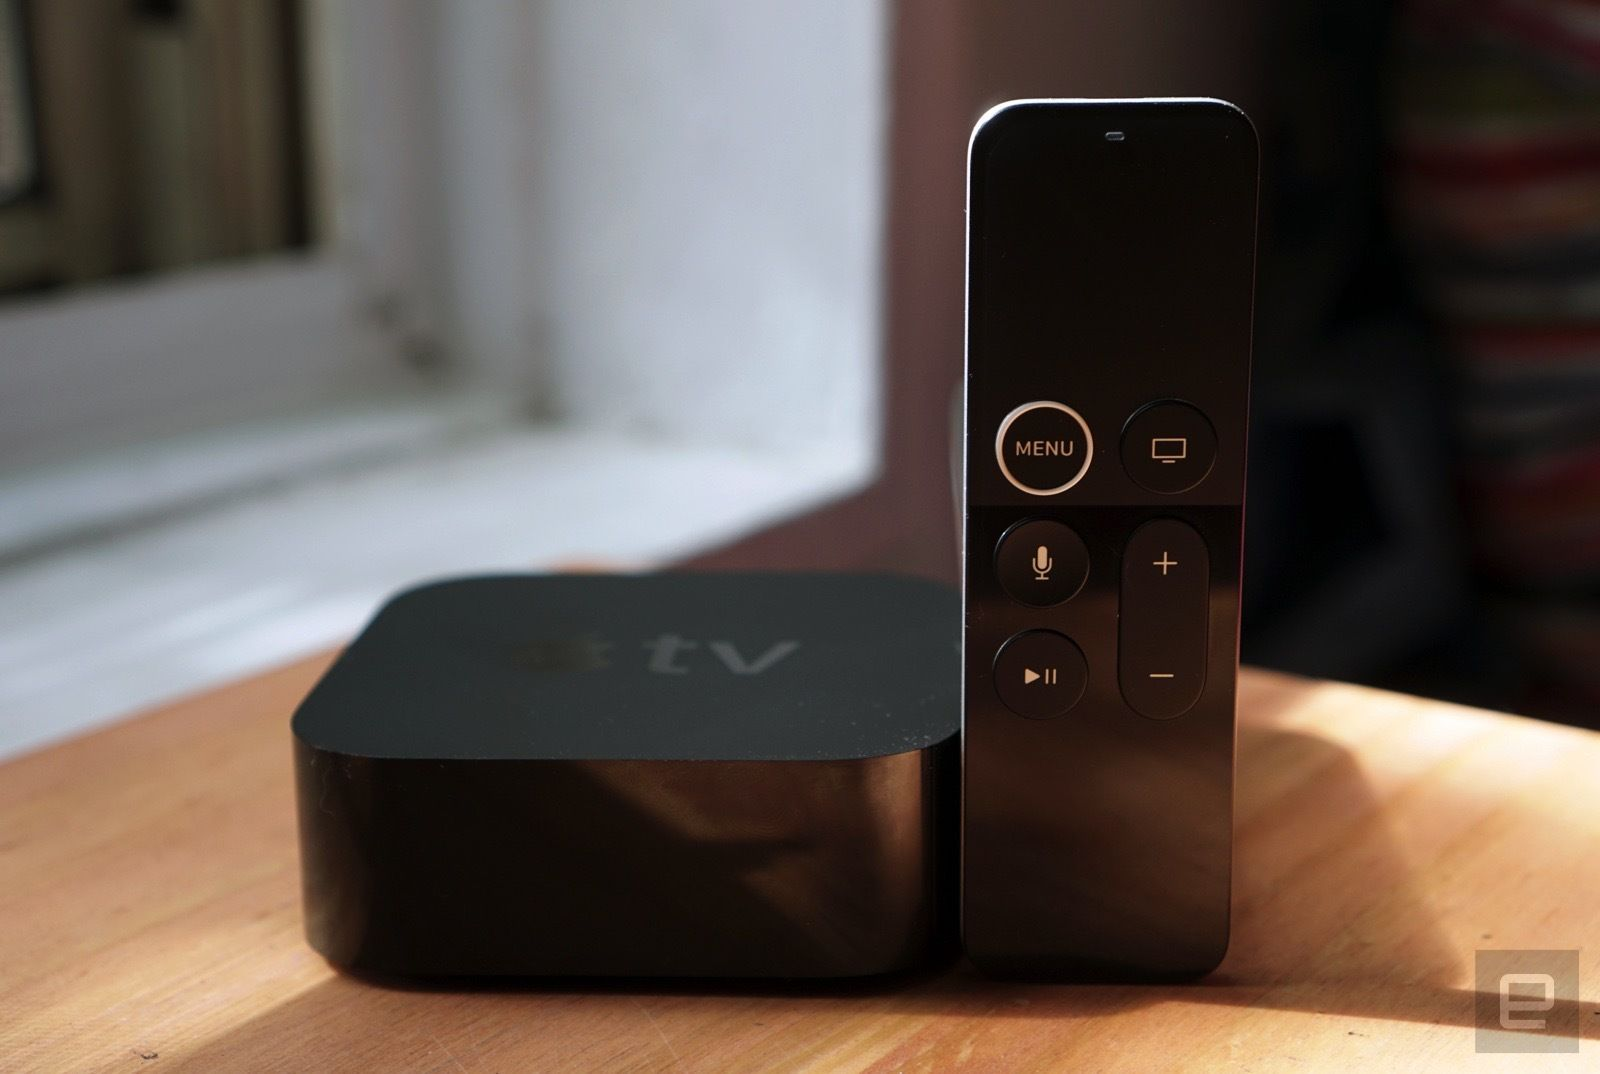 Apple TV will finally stream YouTube in 4K